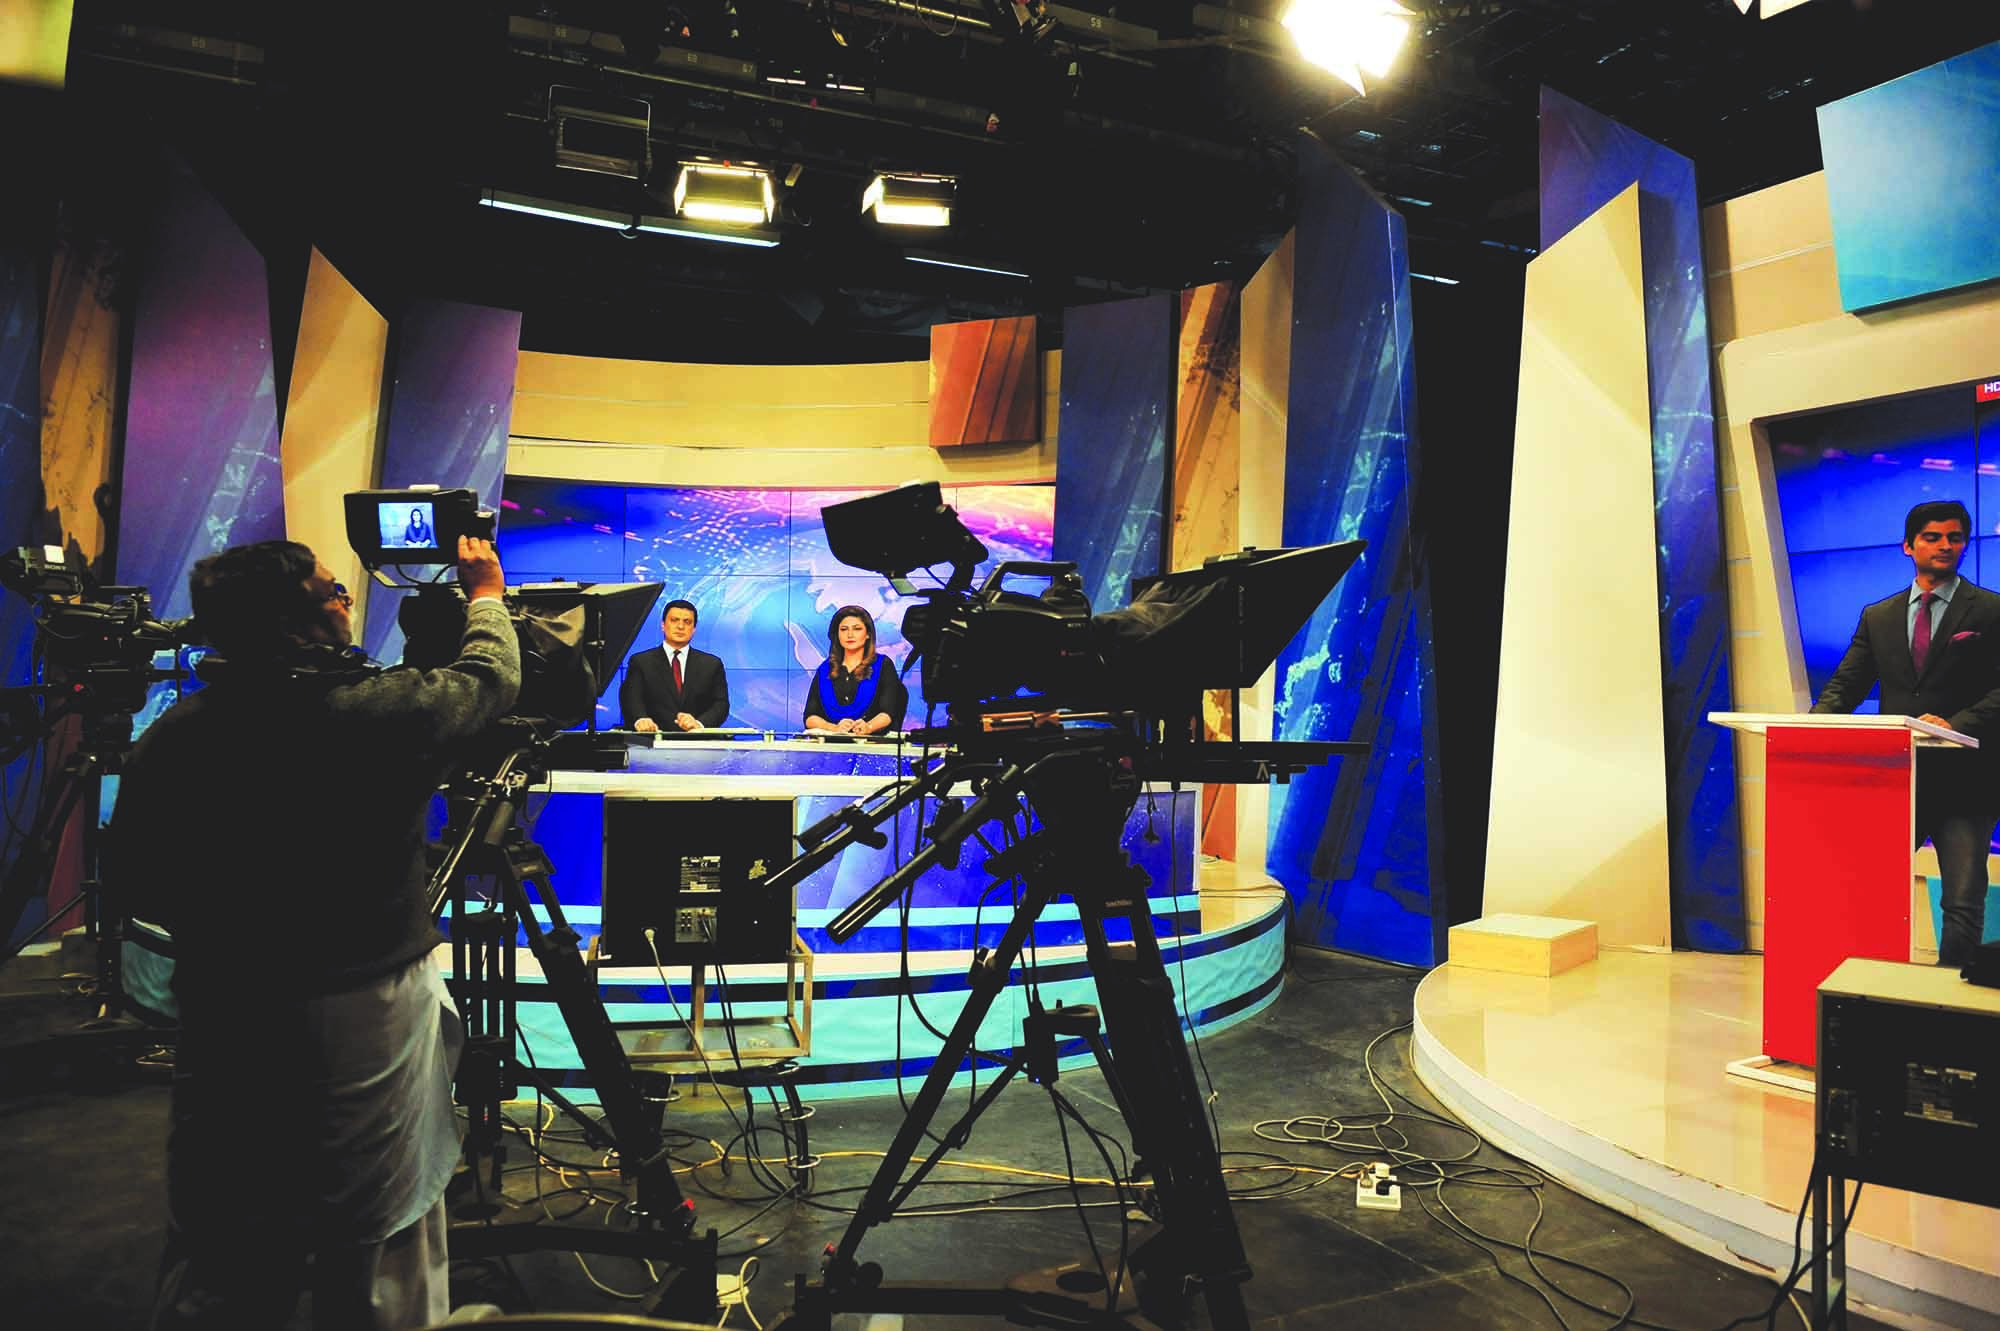 A news programme is under way at PTV's Islamabad studio. Prior to the opening up of private TV channels in the early 2000s, PTV was the only source of news and entertainment. In its early days, 20-minute news bulletins in Urdu and English were broadcast from every centre. Khabarnama, a 25-minute news programme which was aired every night at nine p.m., began in 1970, initially from the Karachi station. Perhaps due to the lack of competition, it became one of the most watched programmes in Pakistan. In 1975, after PTV's stations were linked, Khabarnama was aired from Rawalpindi. Commercials which ran prior, during and after Khabarnama were charged a premium. Today, PTV has a separate channel dedicated to news (PTV News) but it is nowhere as popular as Khabarnama once was. (photo: Arif Mahmood/Dawn White Star)